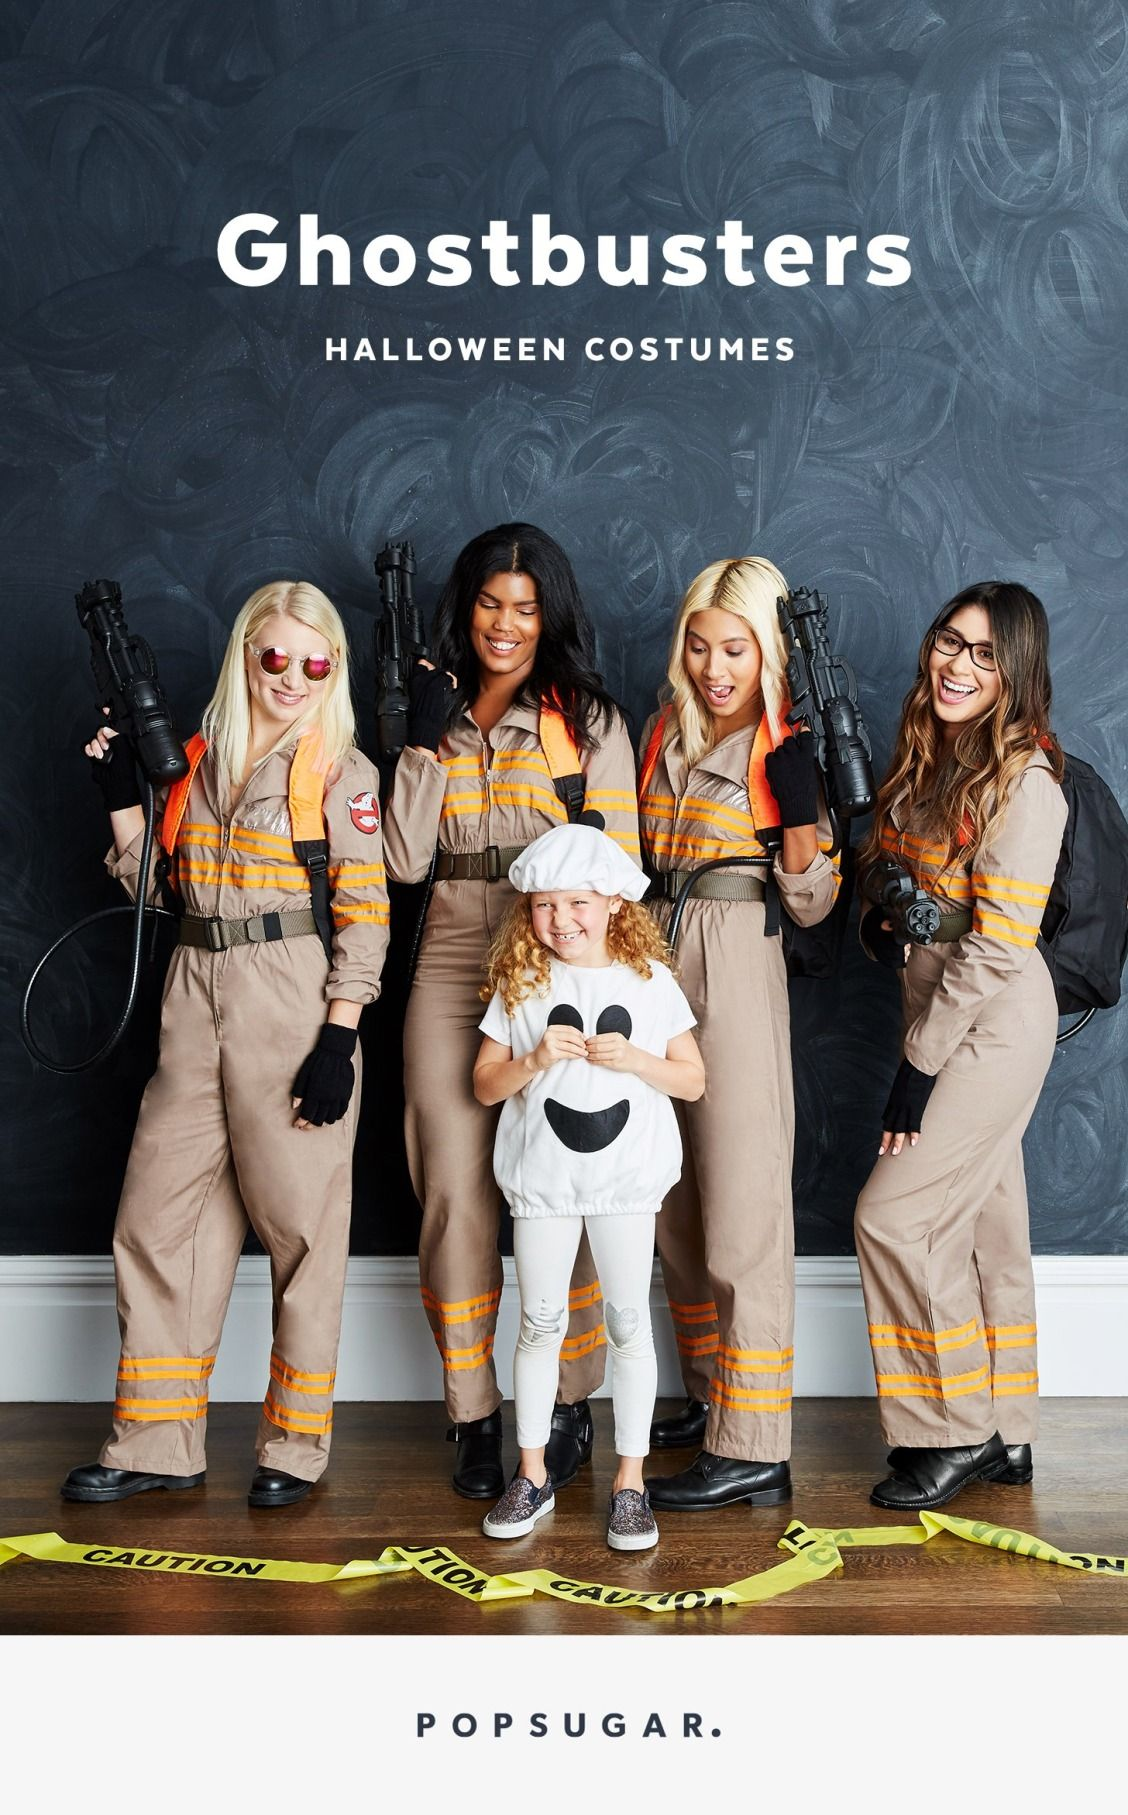 who ya gonna call for a group halloween costume? ghostbusters